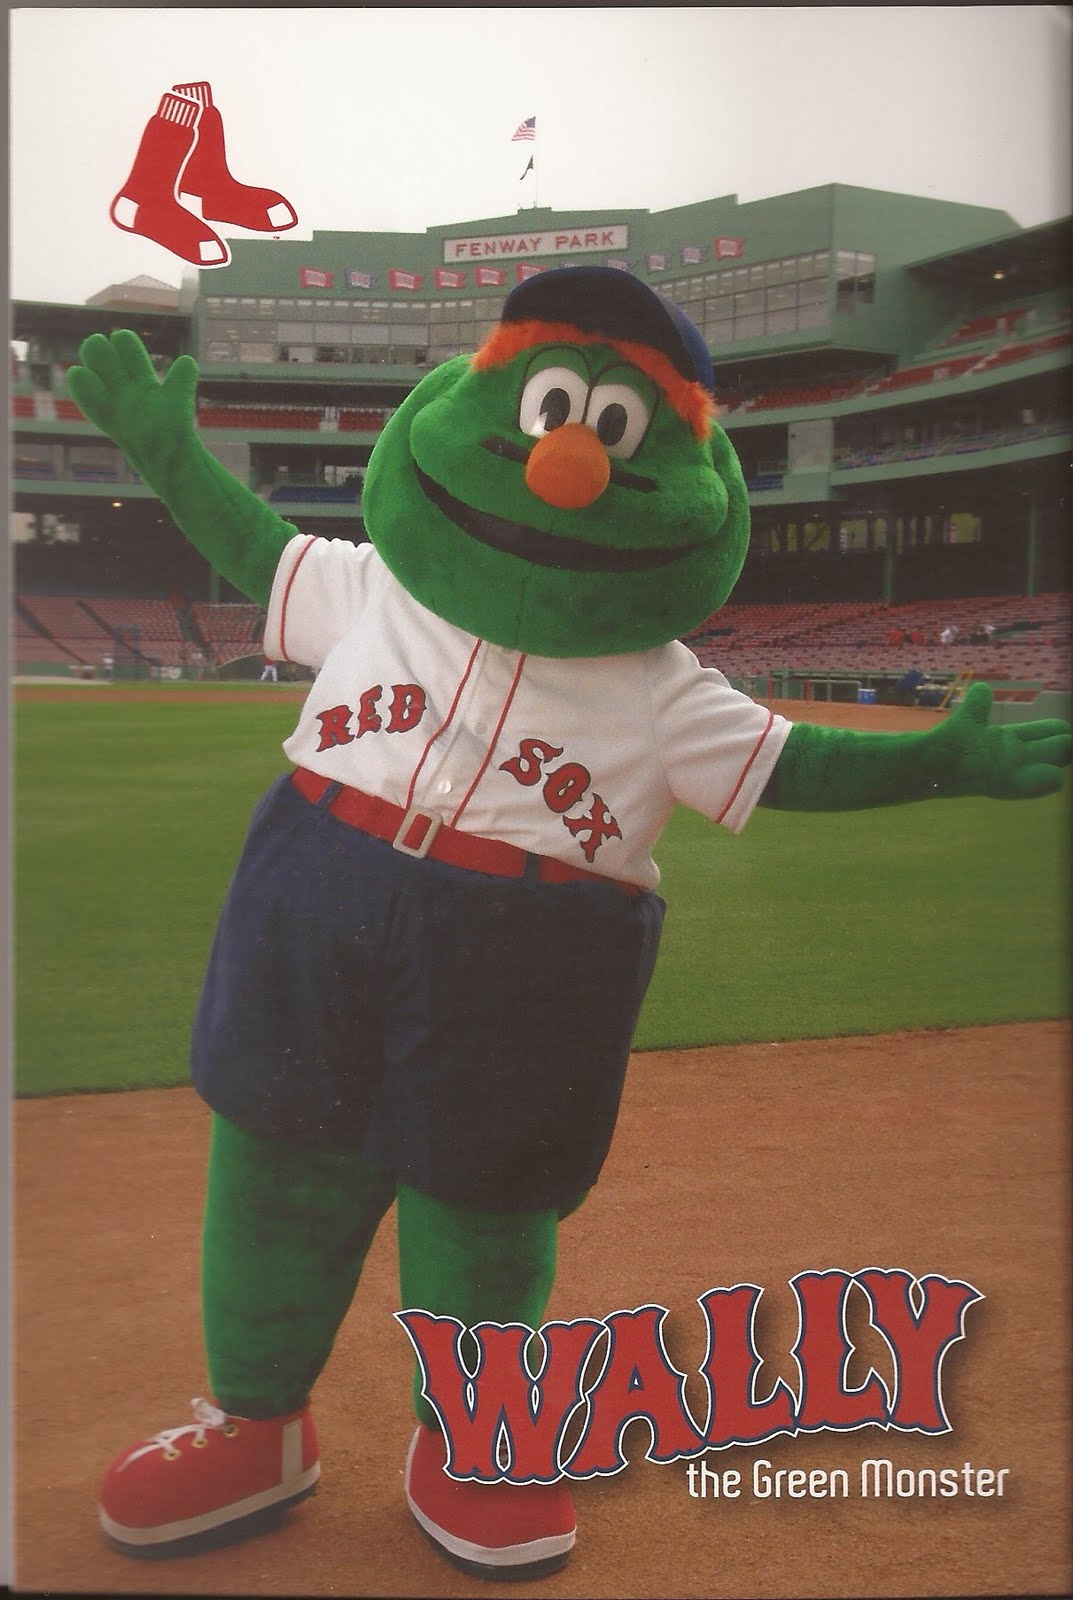 Product From The 90s With A Green Monster Mascot